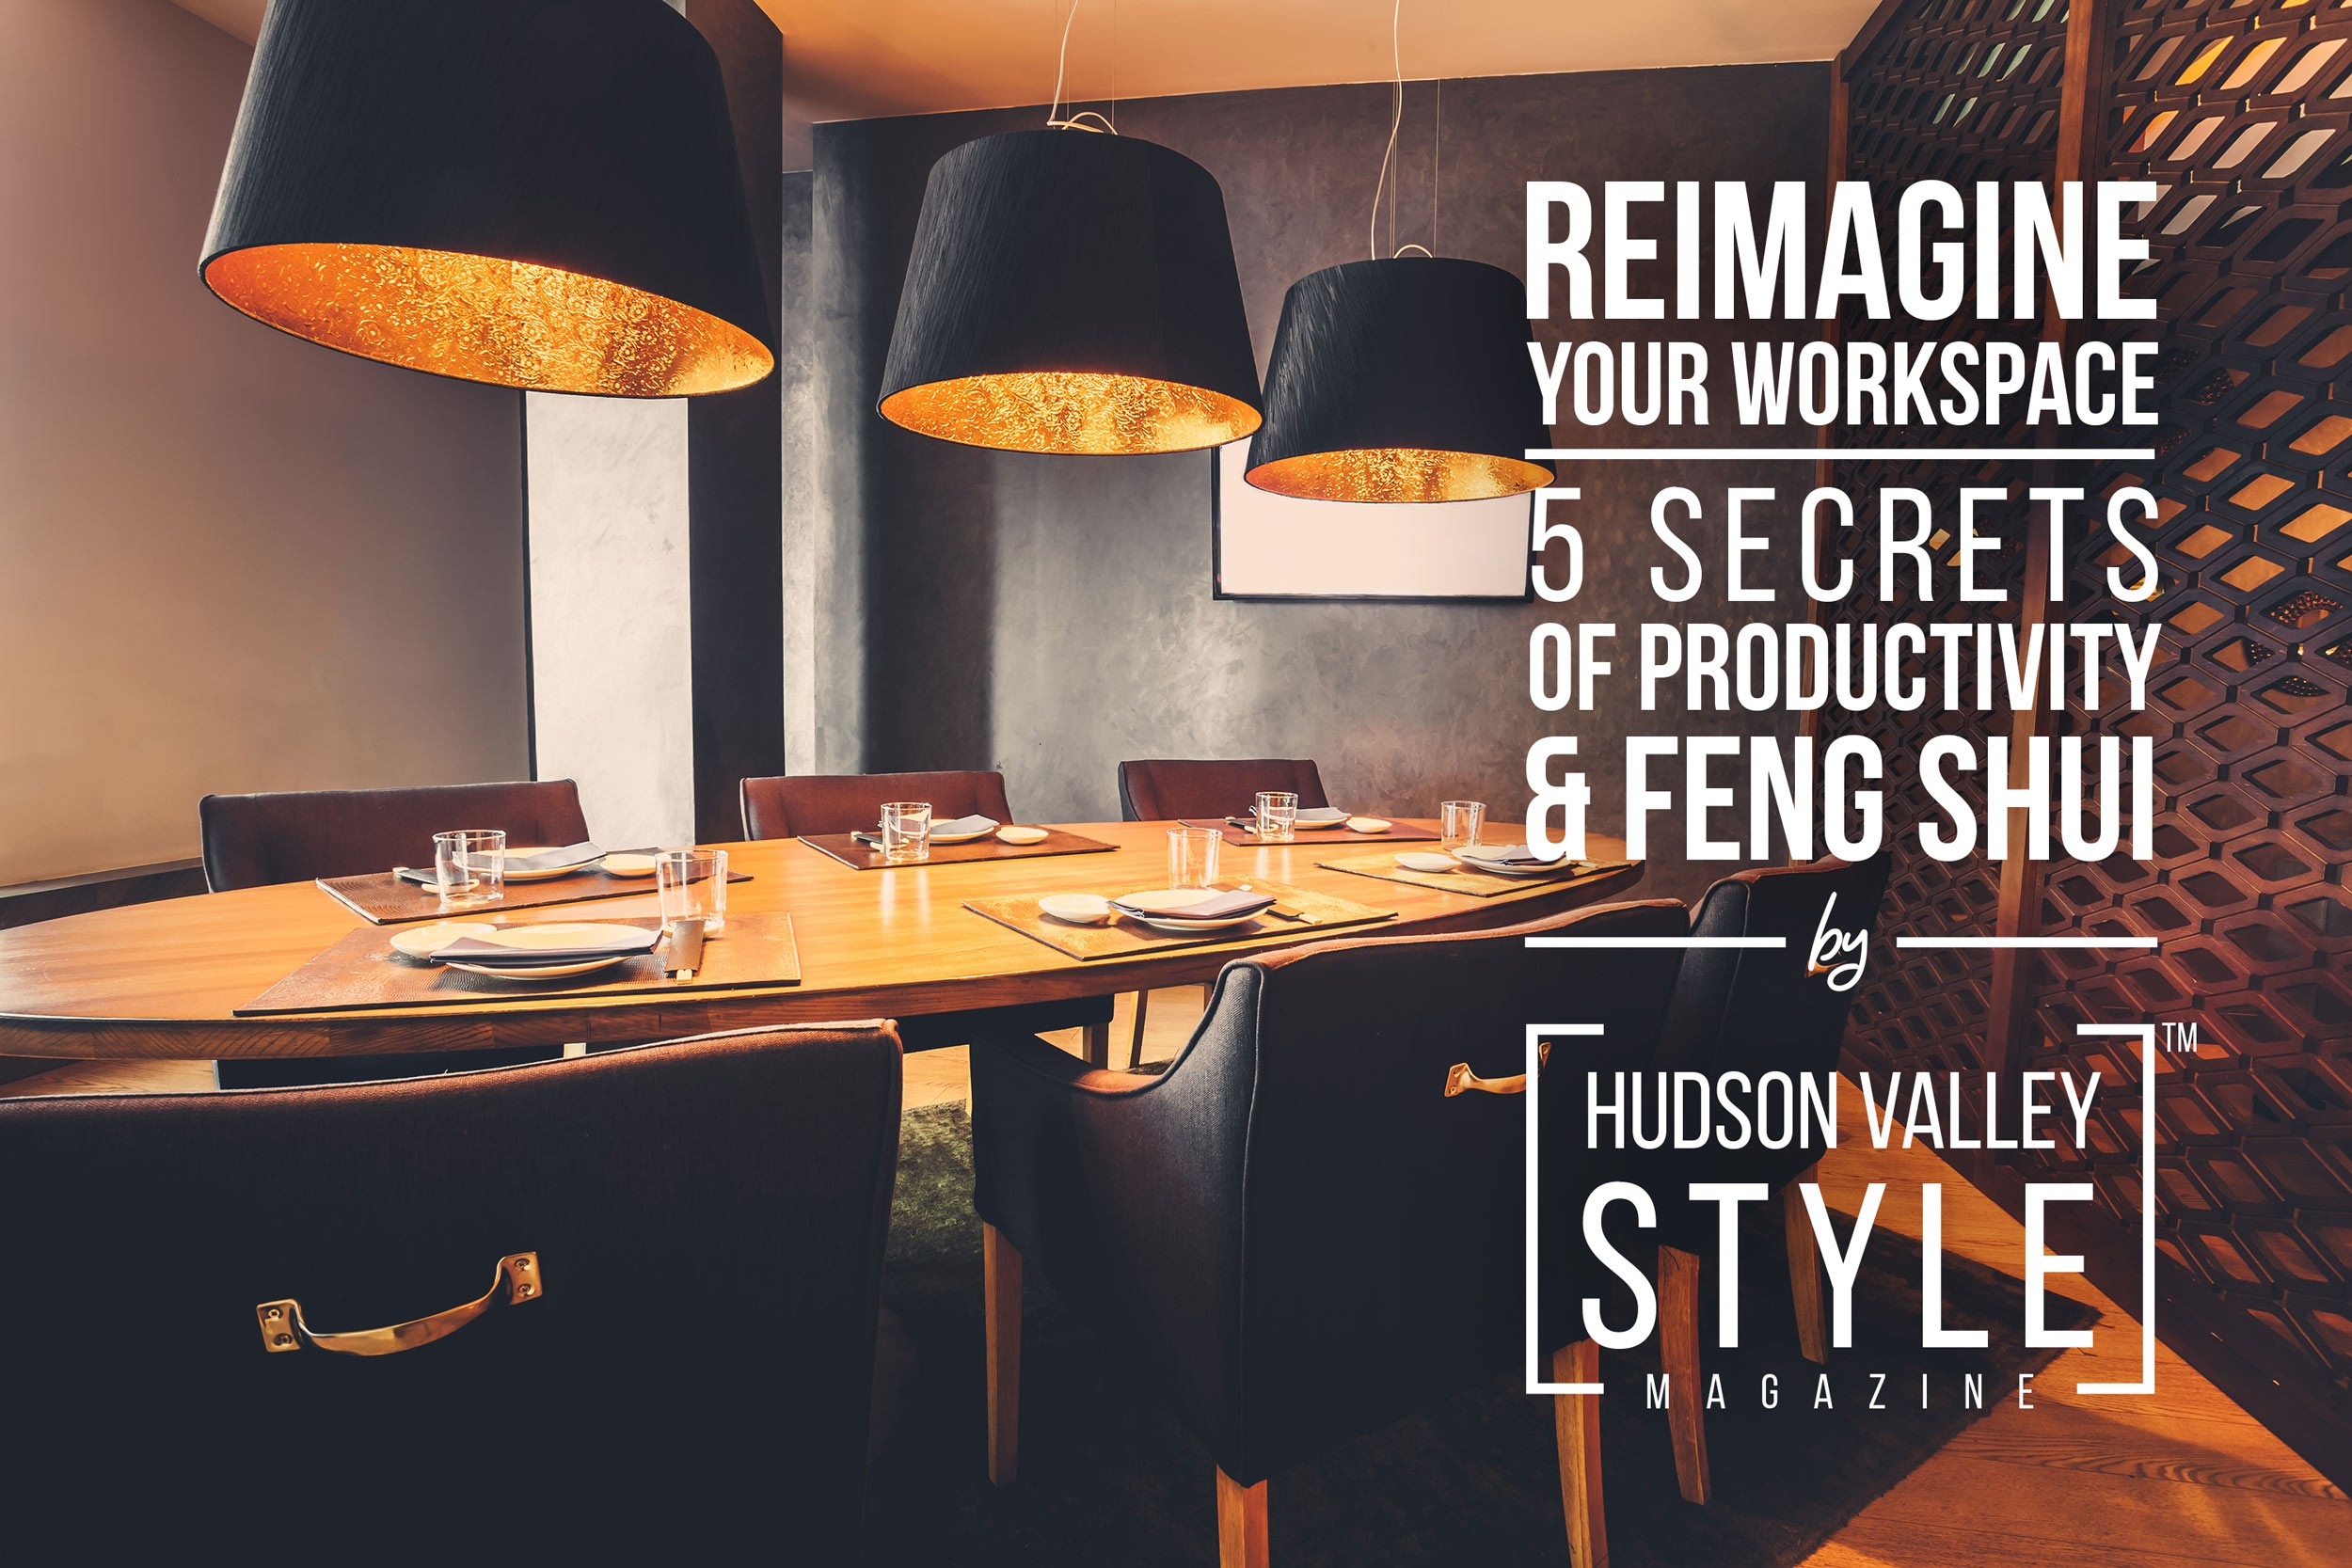 Reimagine Your Workspace – 5 Secrets of Productivity and Feng Shui by Maxwell Alexander